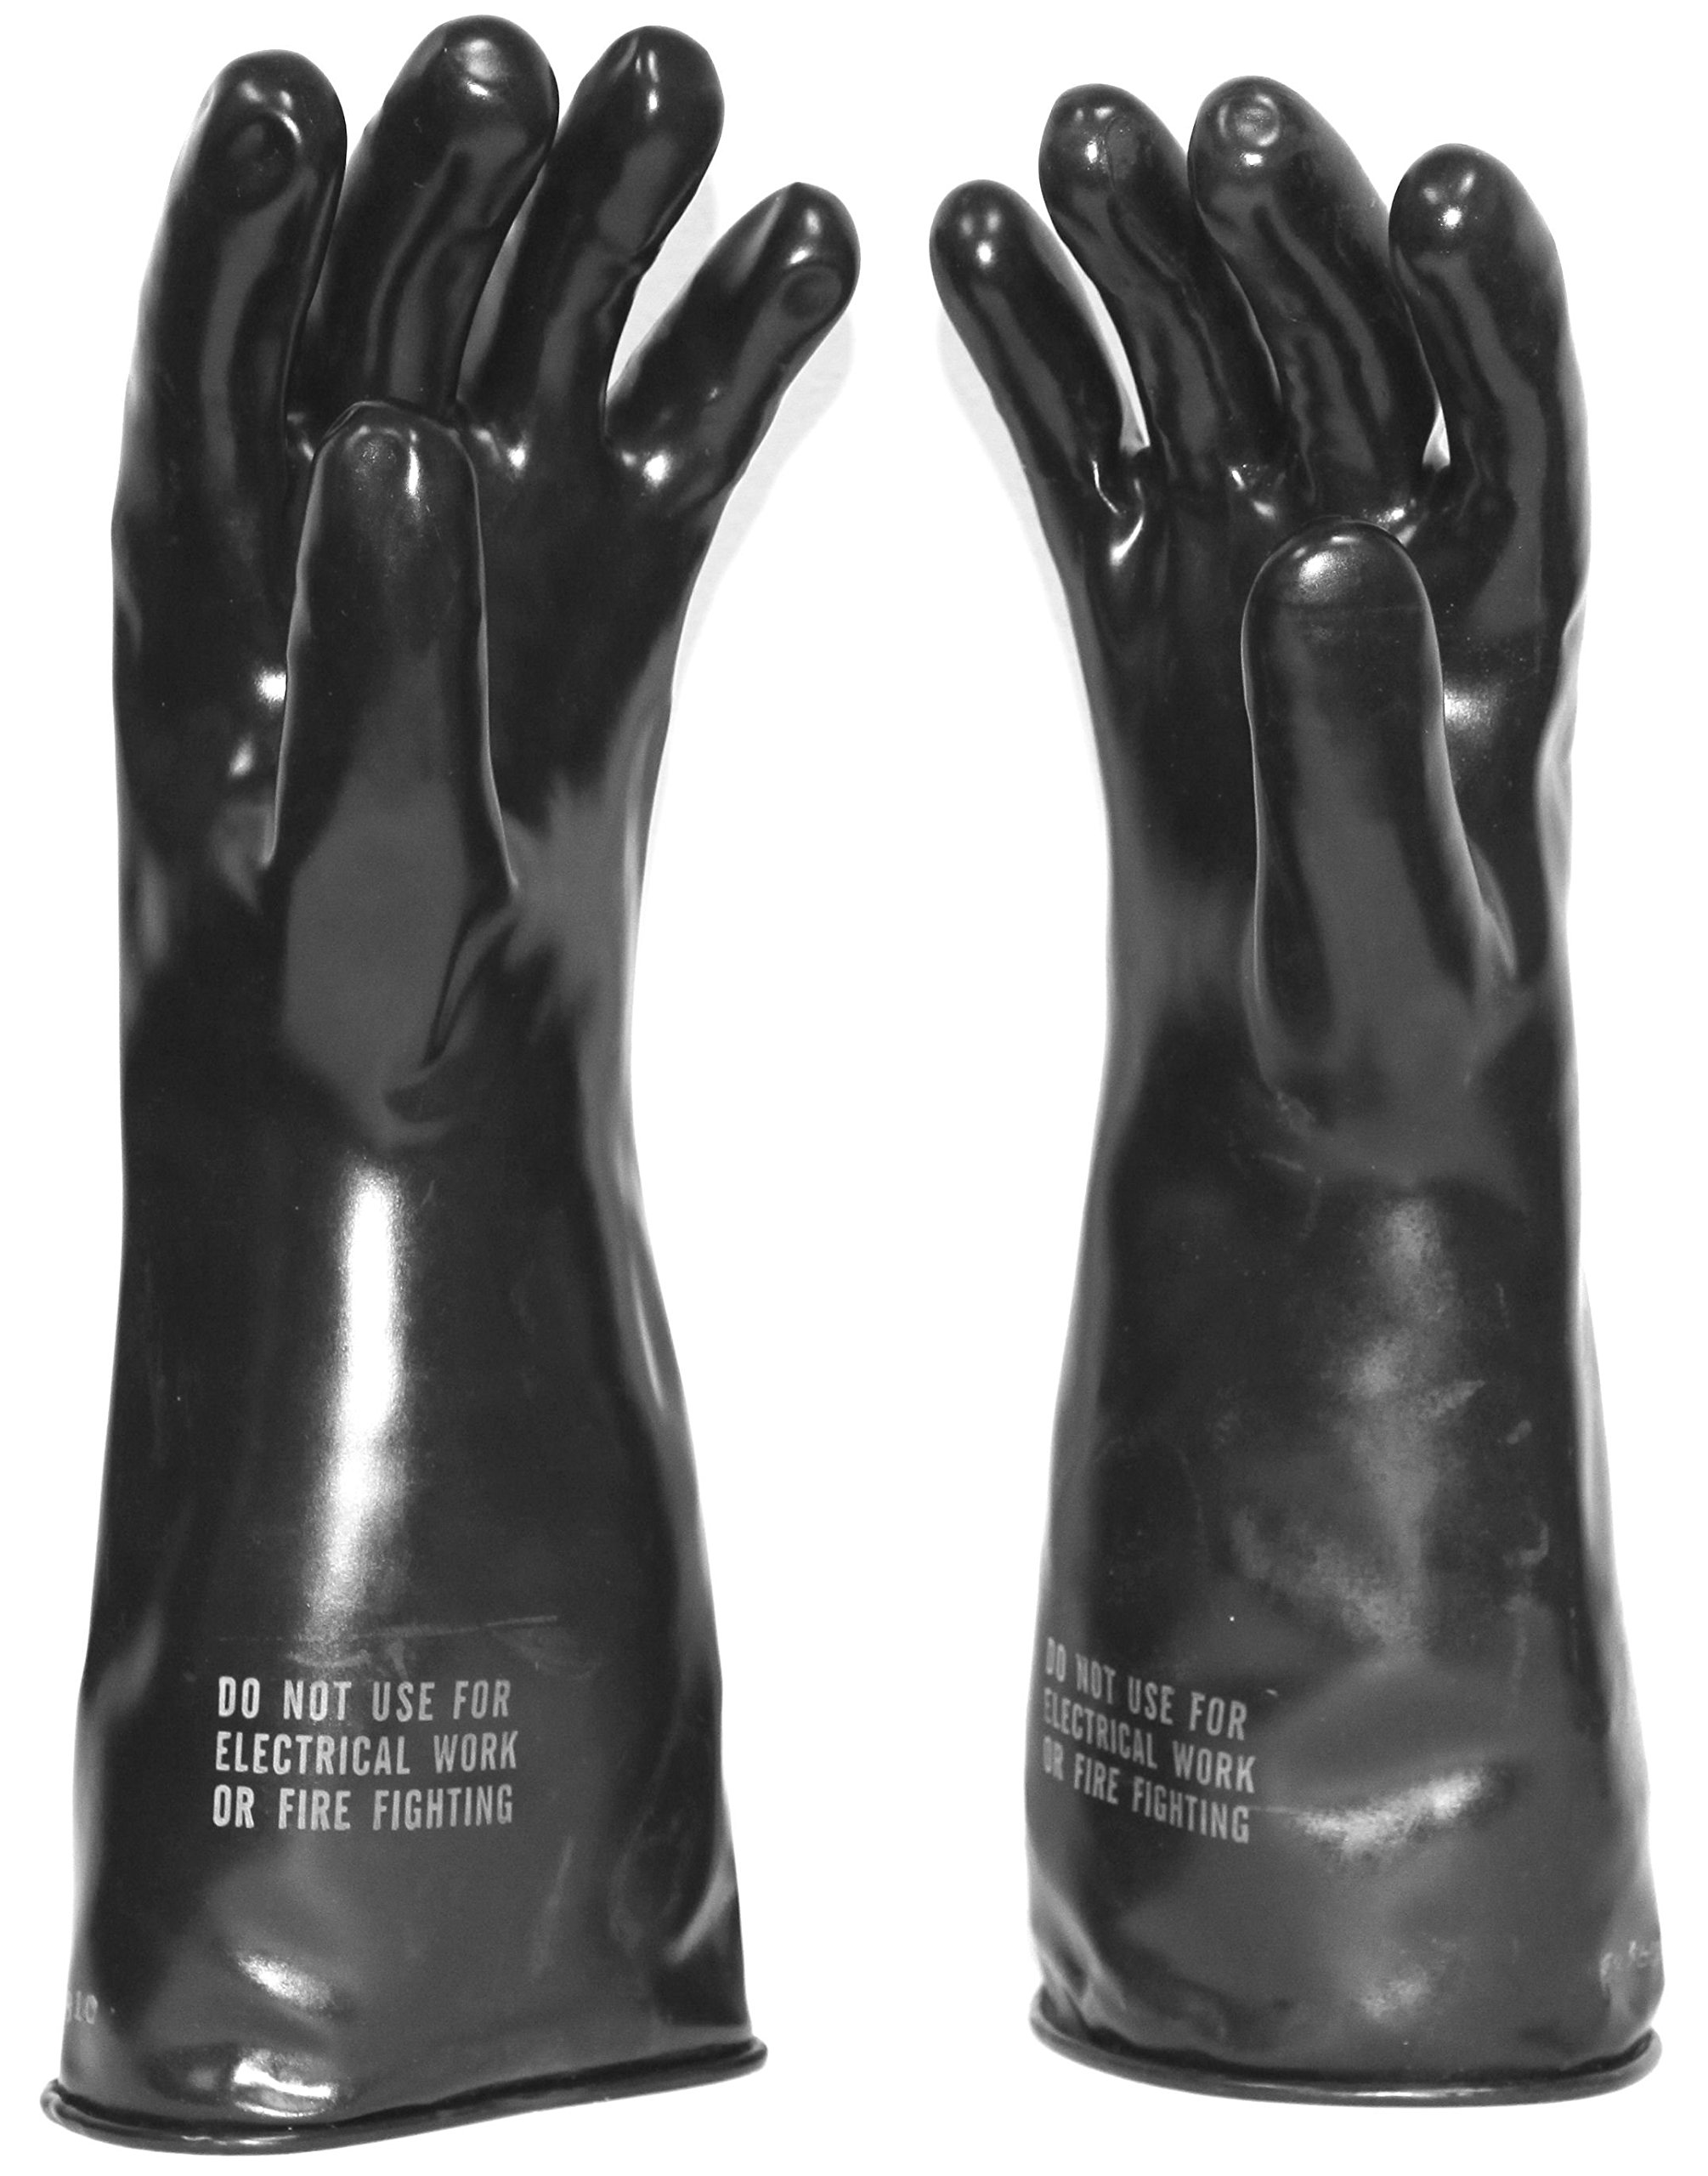 Butyl Rubber Gloves Chemical Reisistant 48 Per Box Large by Sibe North / Brunswick (Image #1)